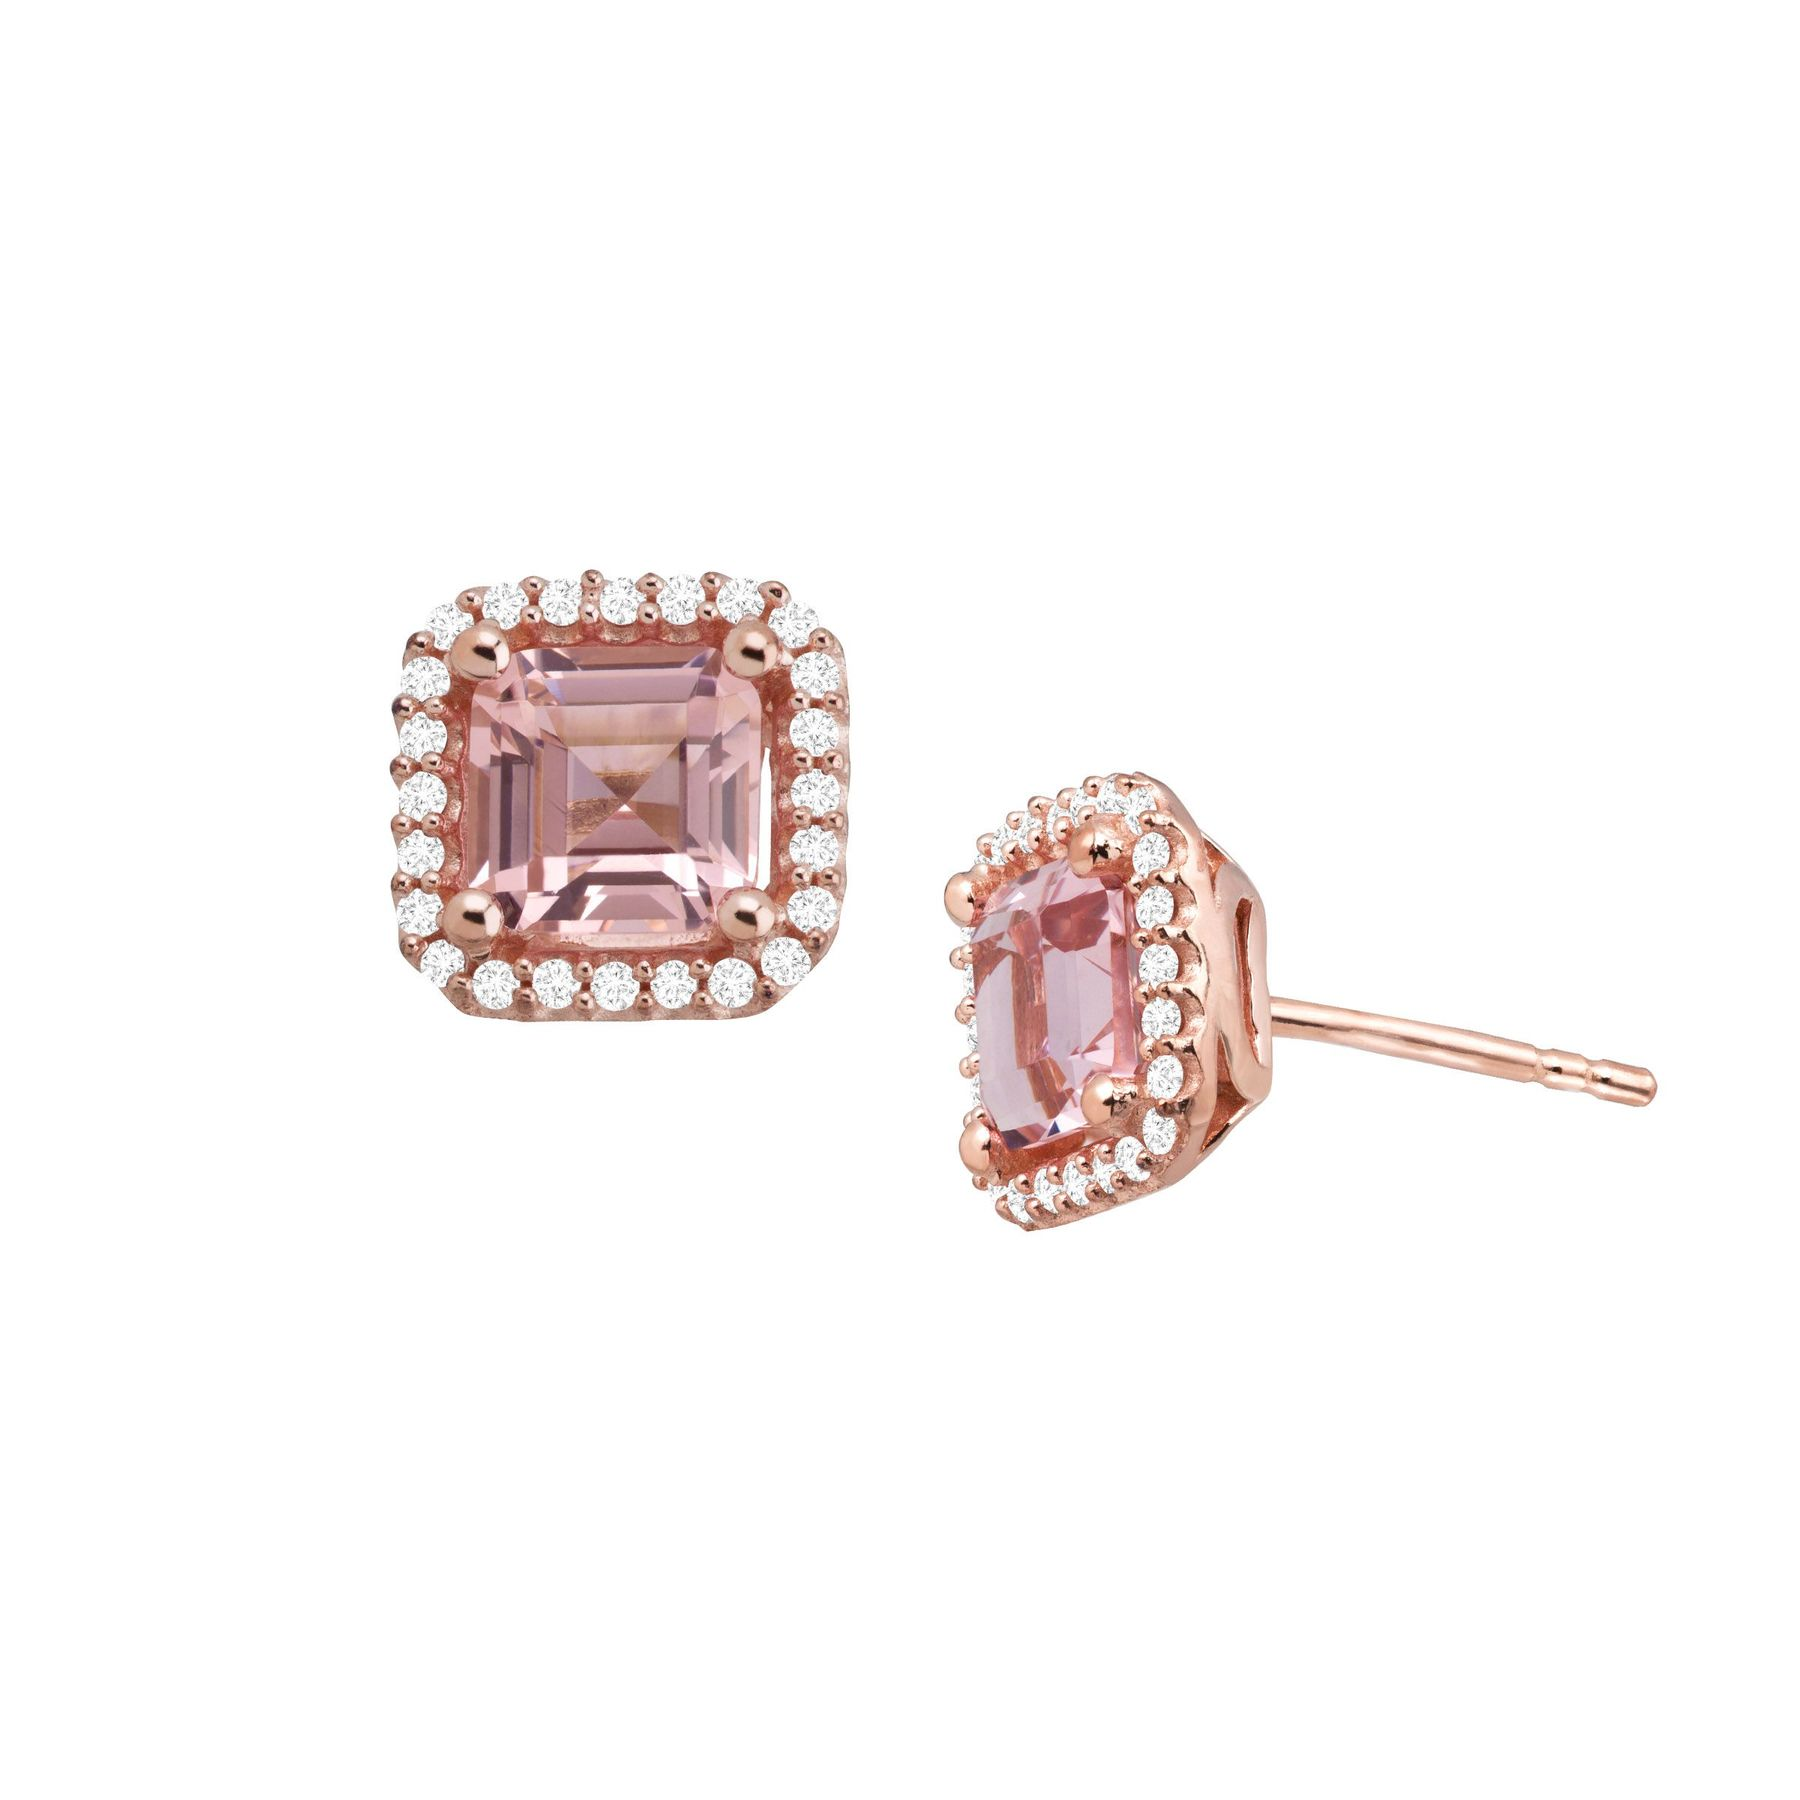 styles stud earrings this pin year pinterest morganite gold rose